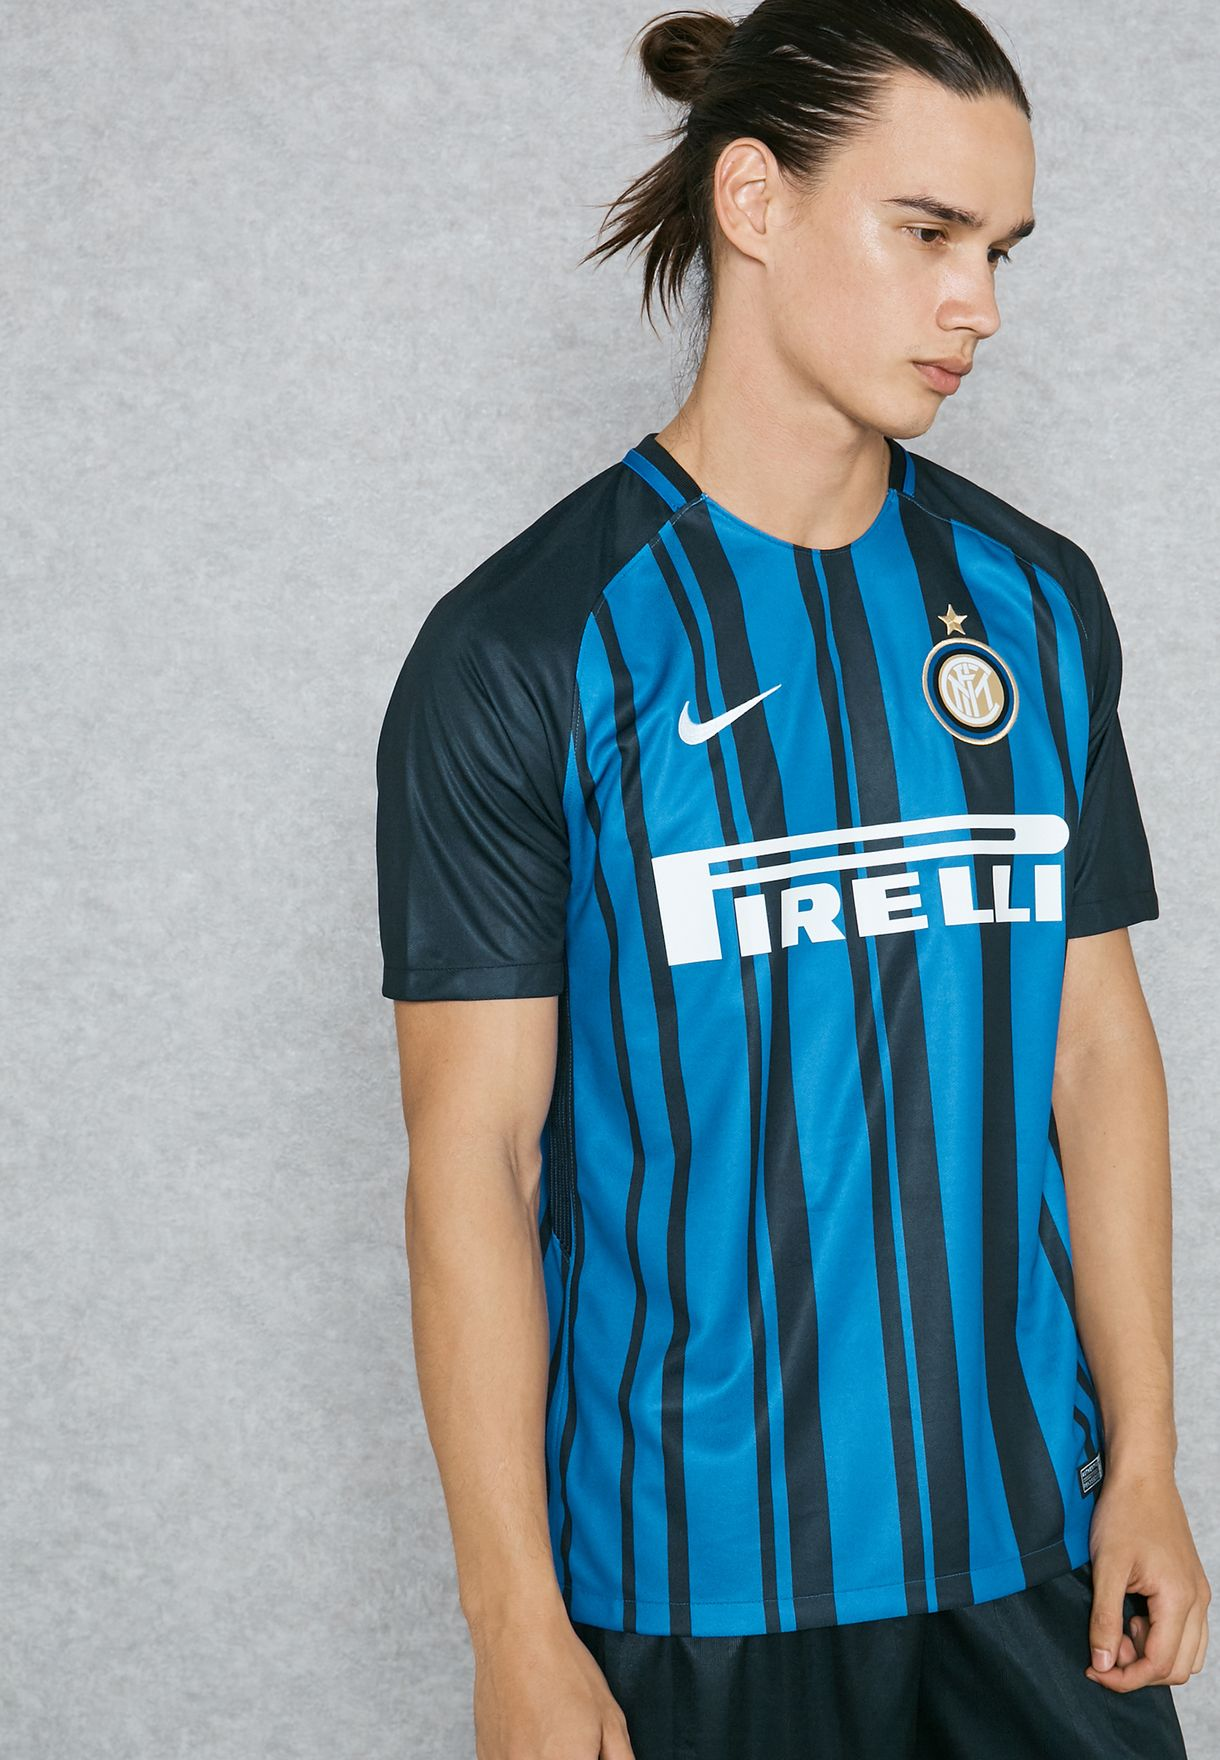 100% authentic 51923 70157 Inter Milan 17/18 Home Jersey